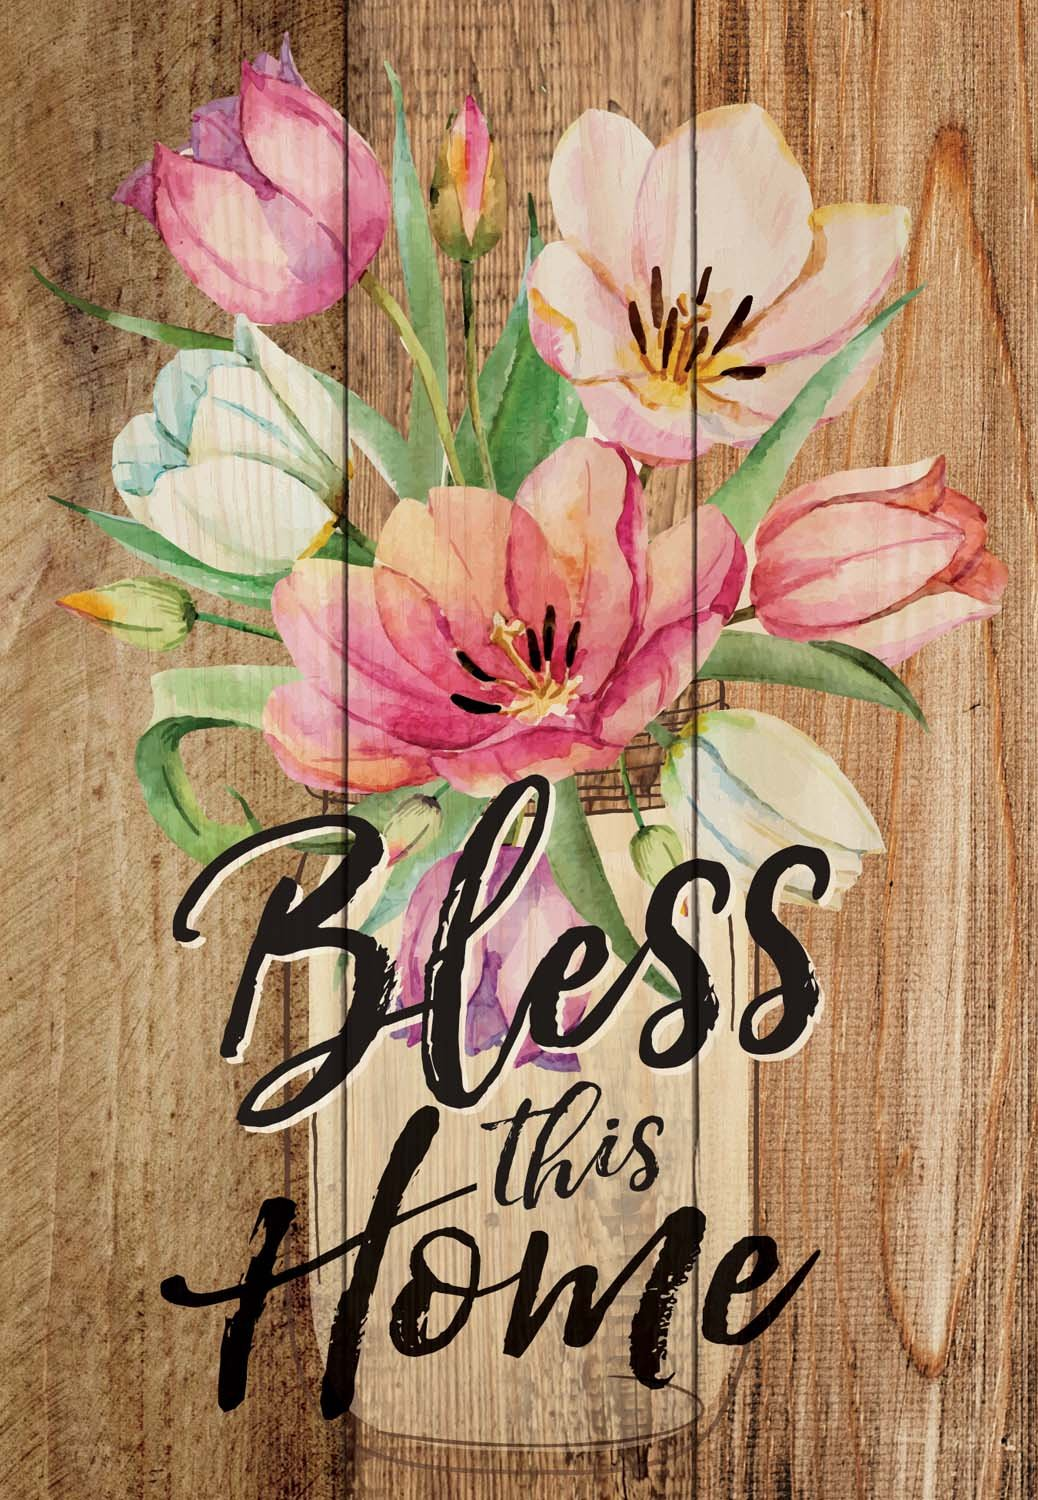 Bless This Home Floral Distressed 7 x 5 Small Wood Plank Design Plaque Sign